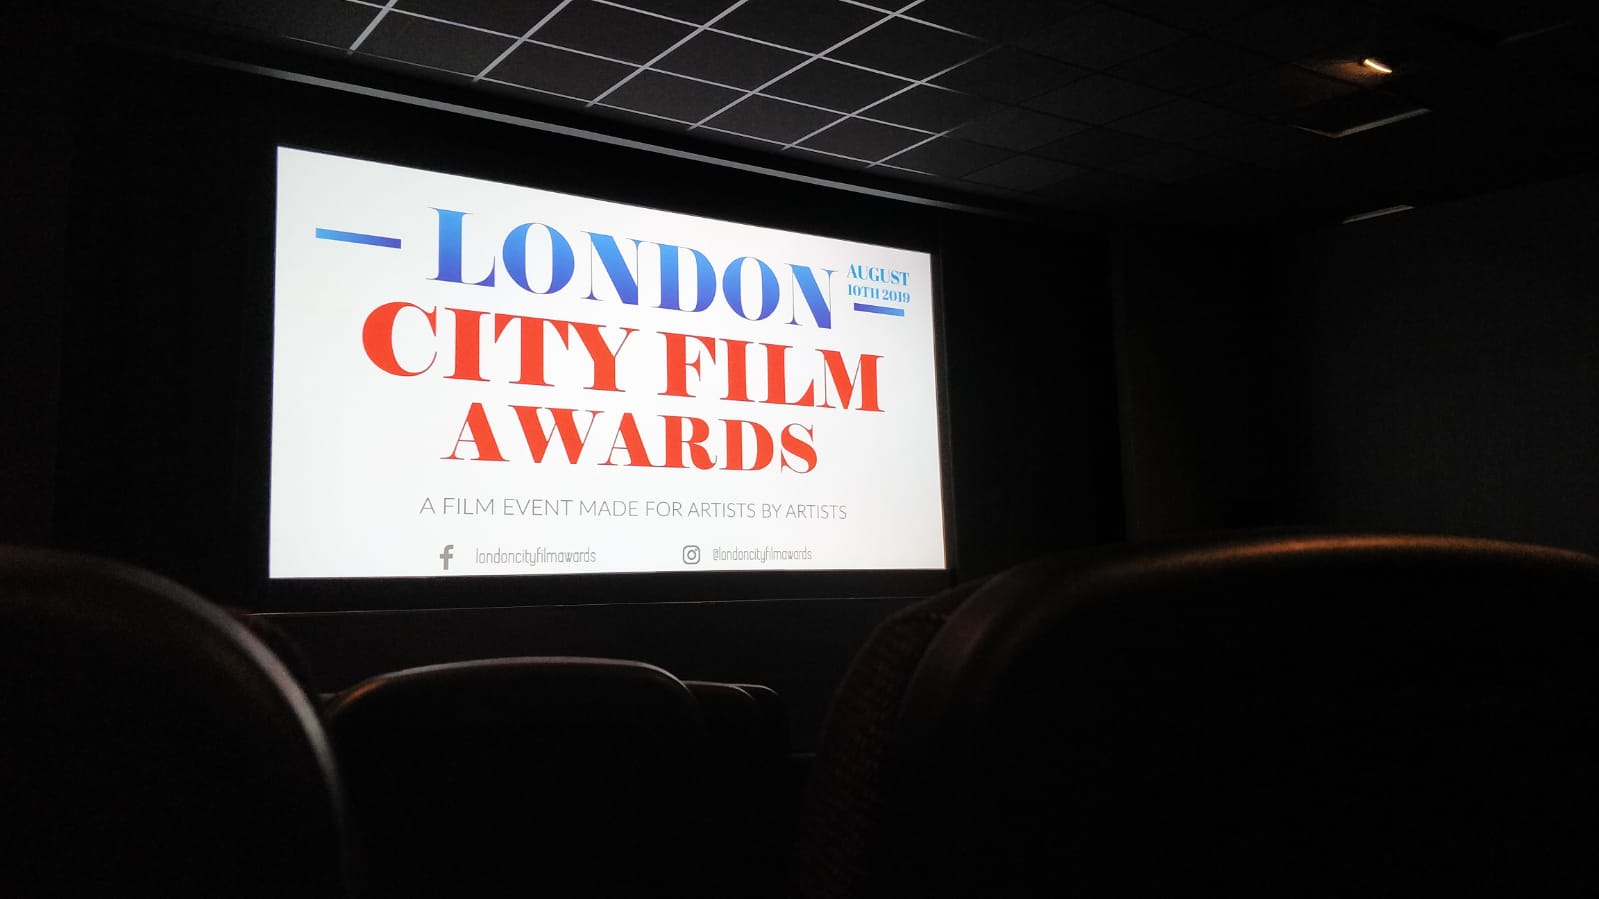 The big screen at the London City Film Award 2019